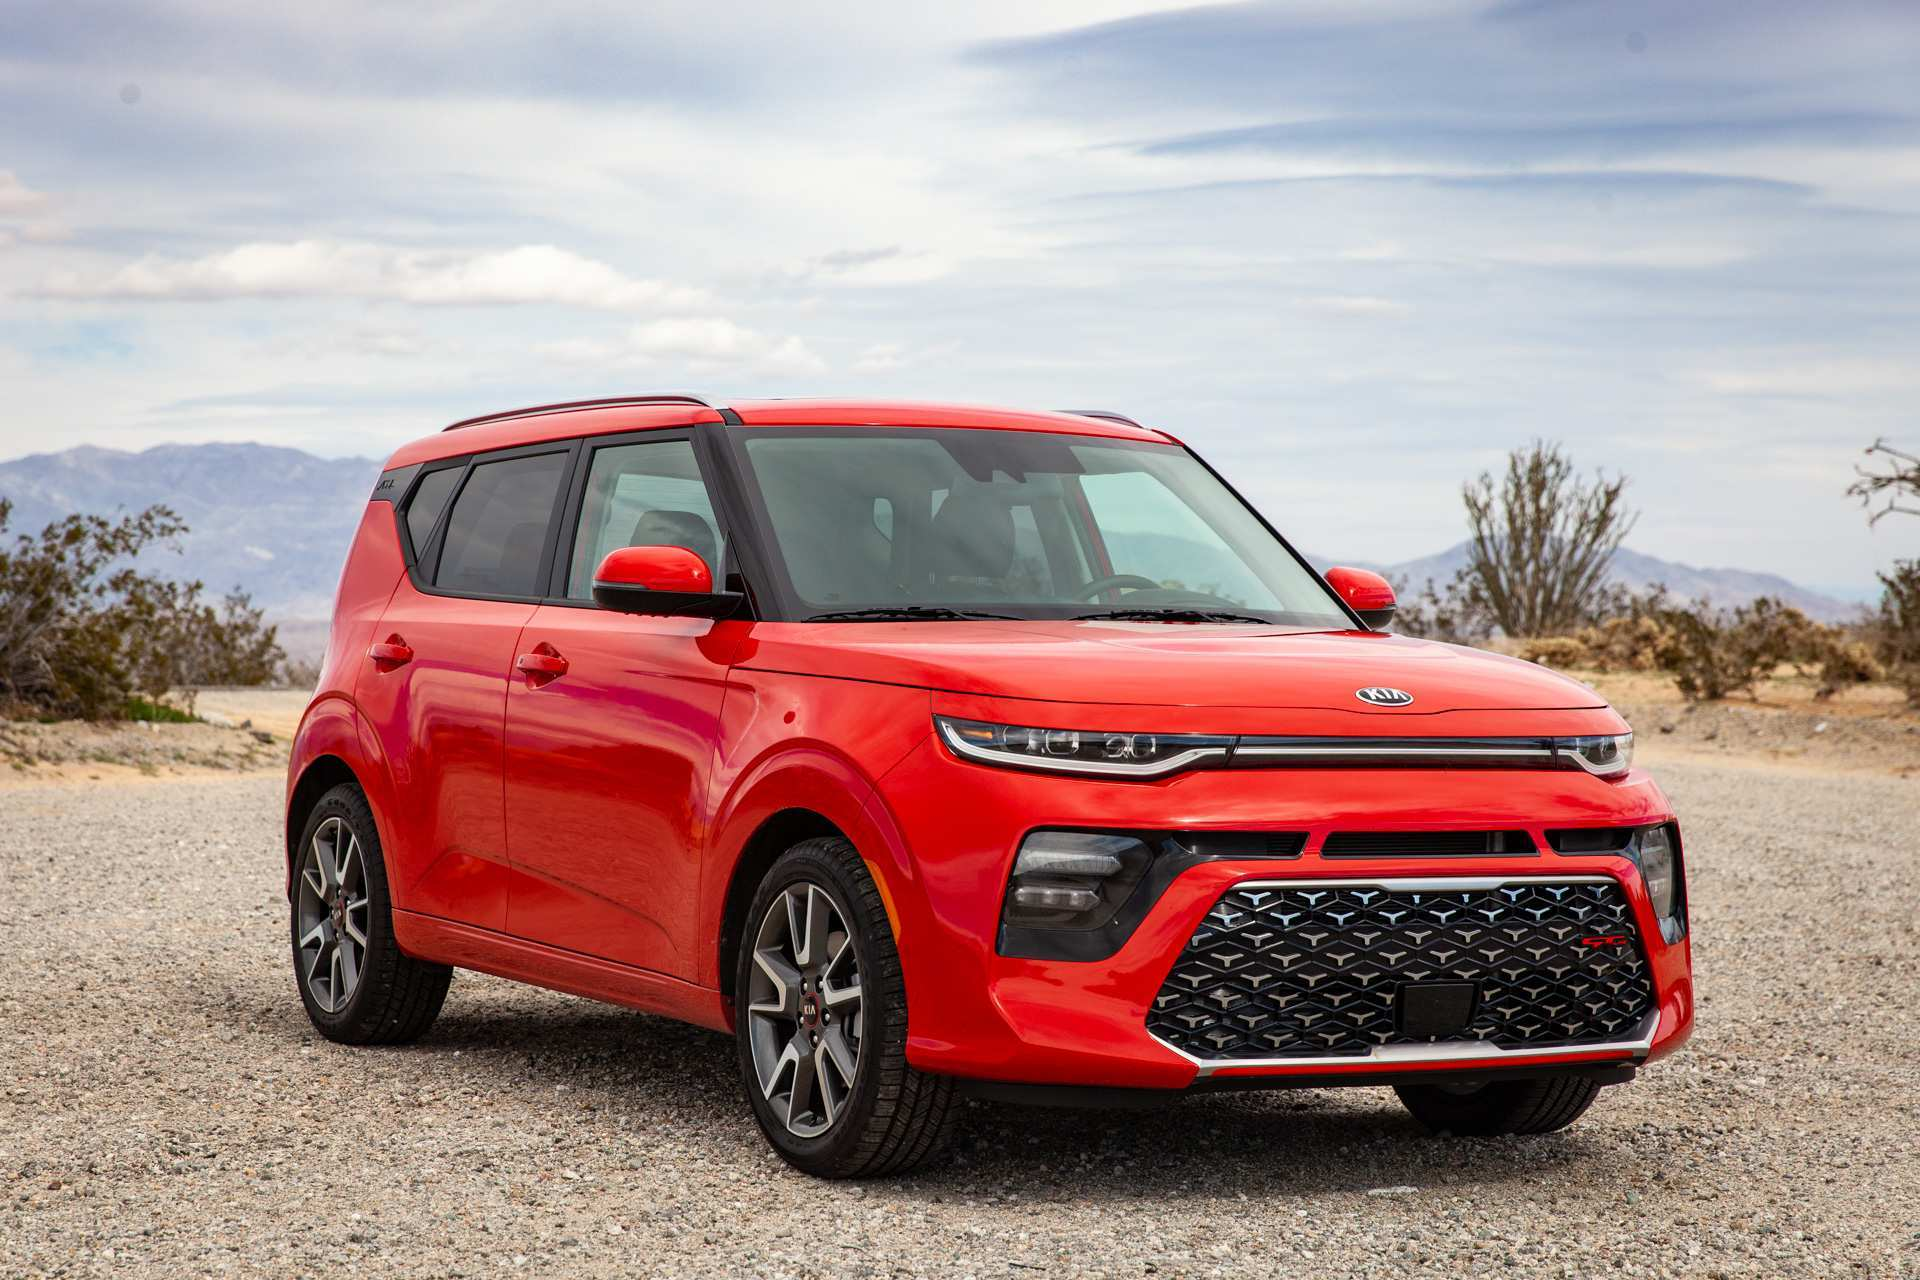 49 New 2020 Kia Soul Horsepower New Concept for 2020 Kia Soul Horsepower